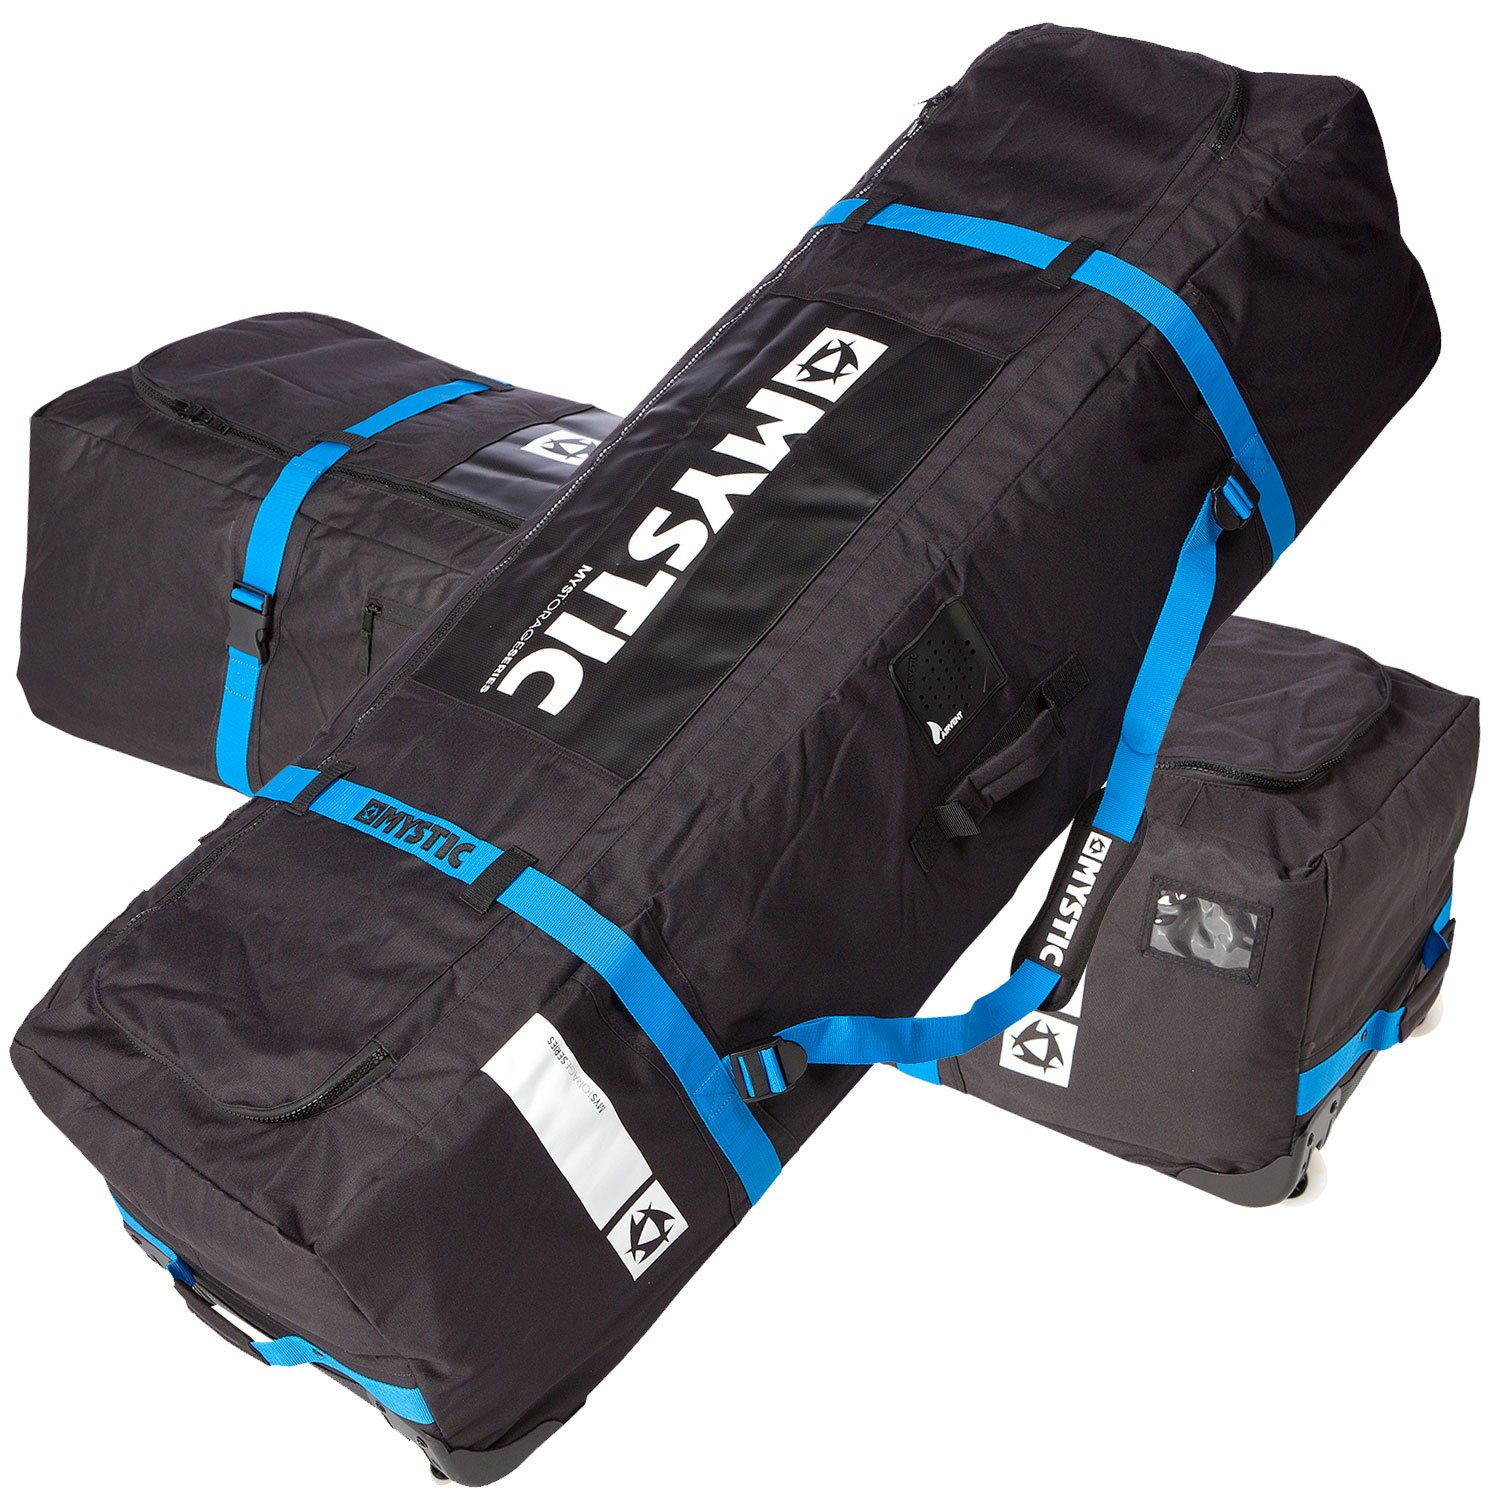 Mystic Gear Box Deluxe Kiteboard Bag With Wheels 130700 Bag Size ...